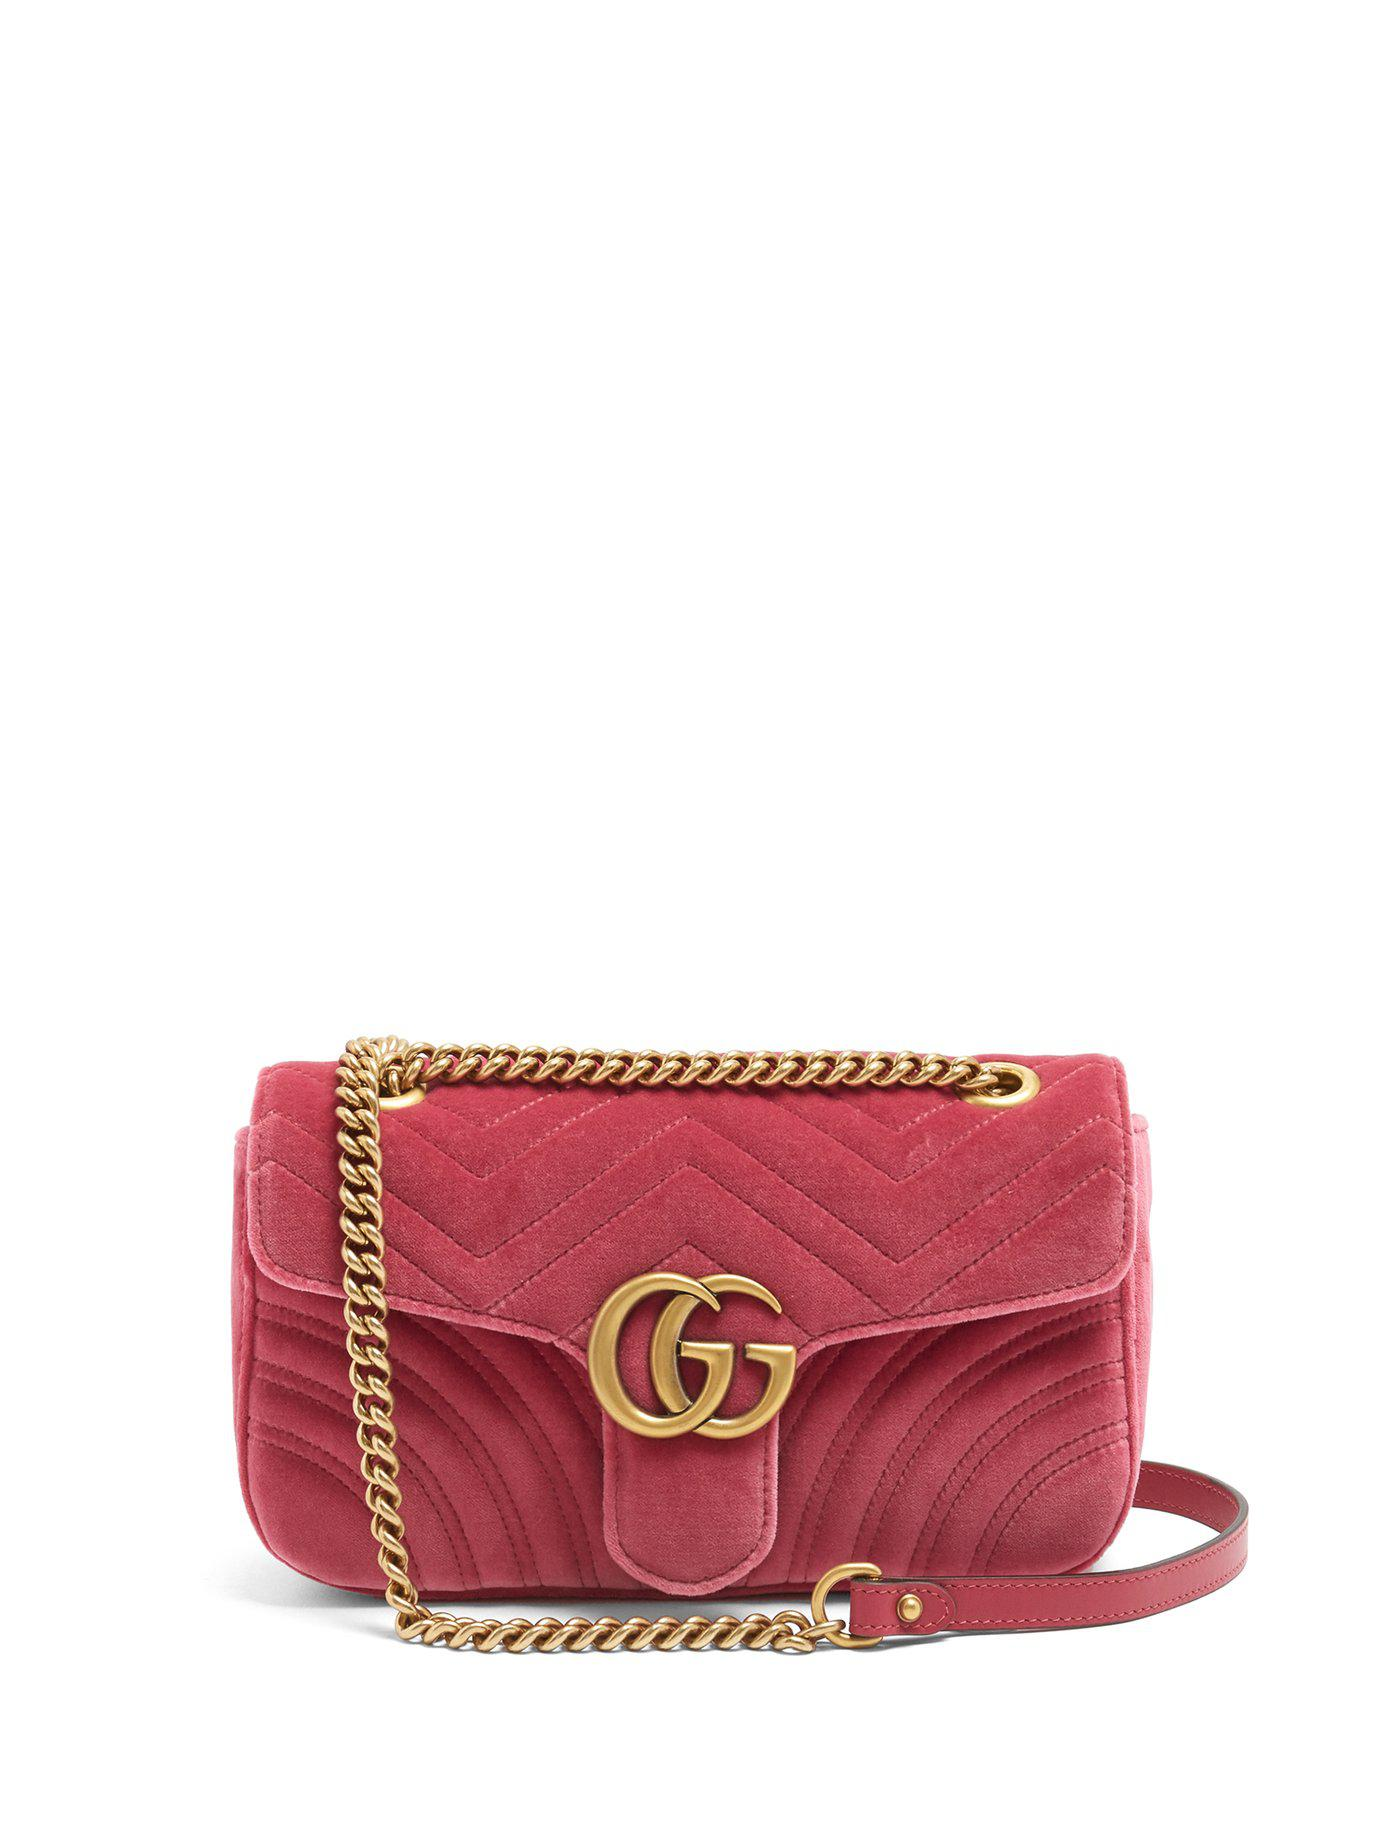 2579d7173e73 Gucci Gg Marmont Small Quilted Velvet Cross Body Bag in Pink - Lyst